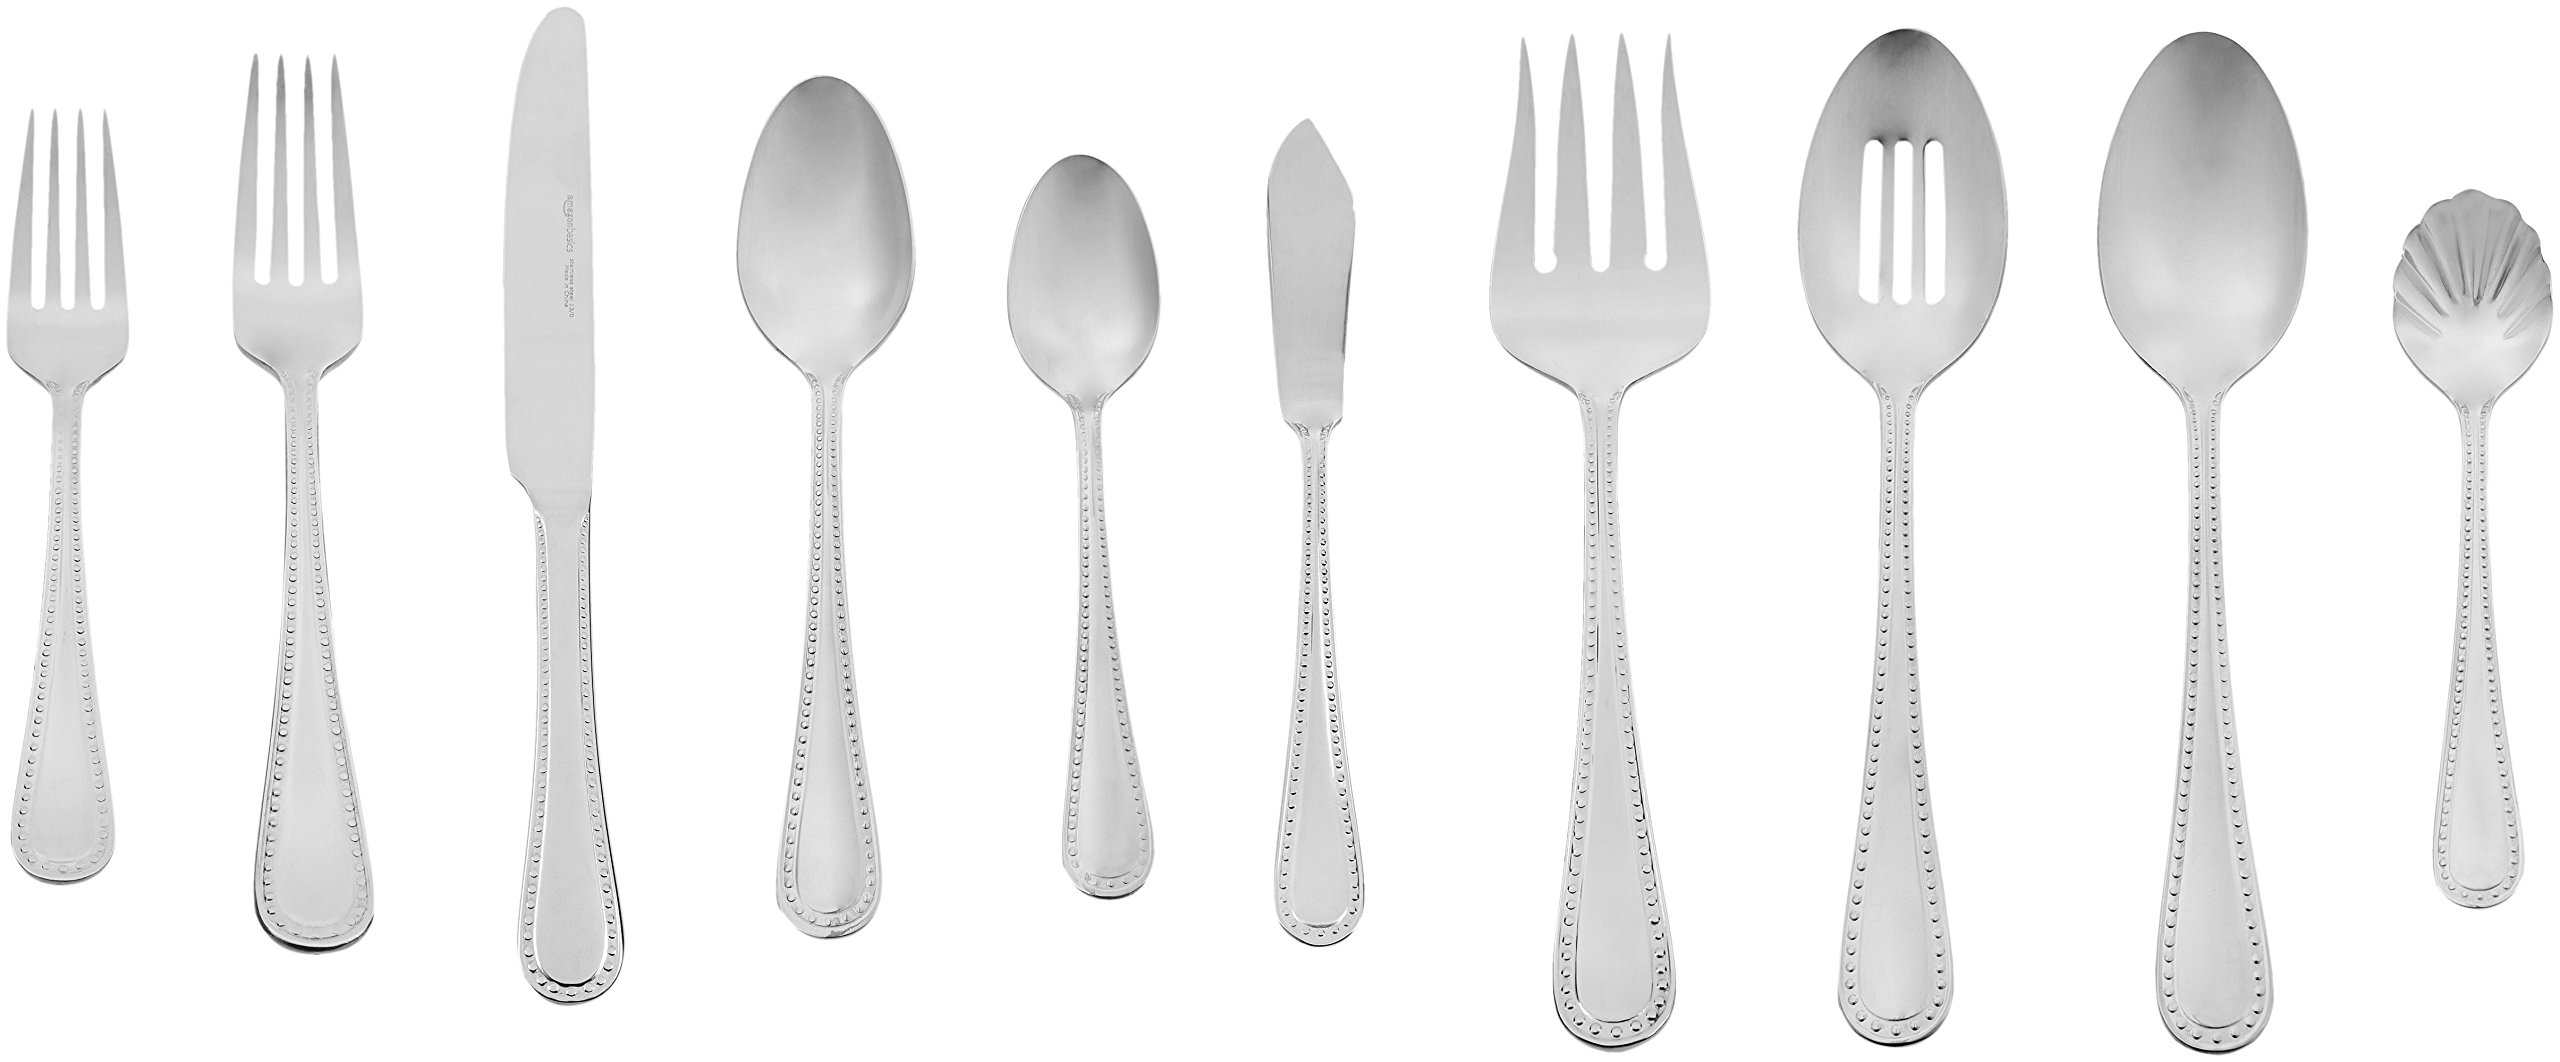 AmazonBasics 65 Piece Stainless Flatware Pearled